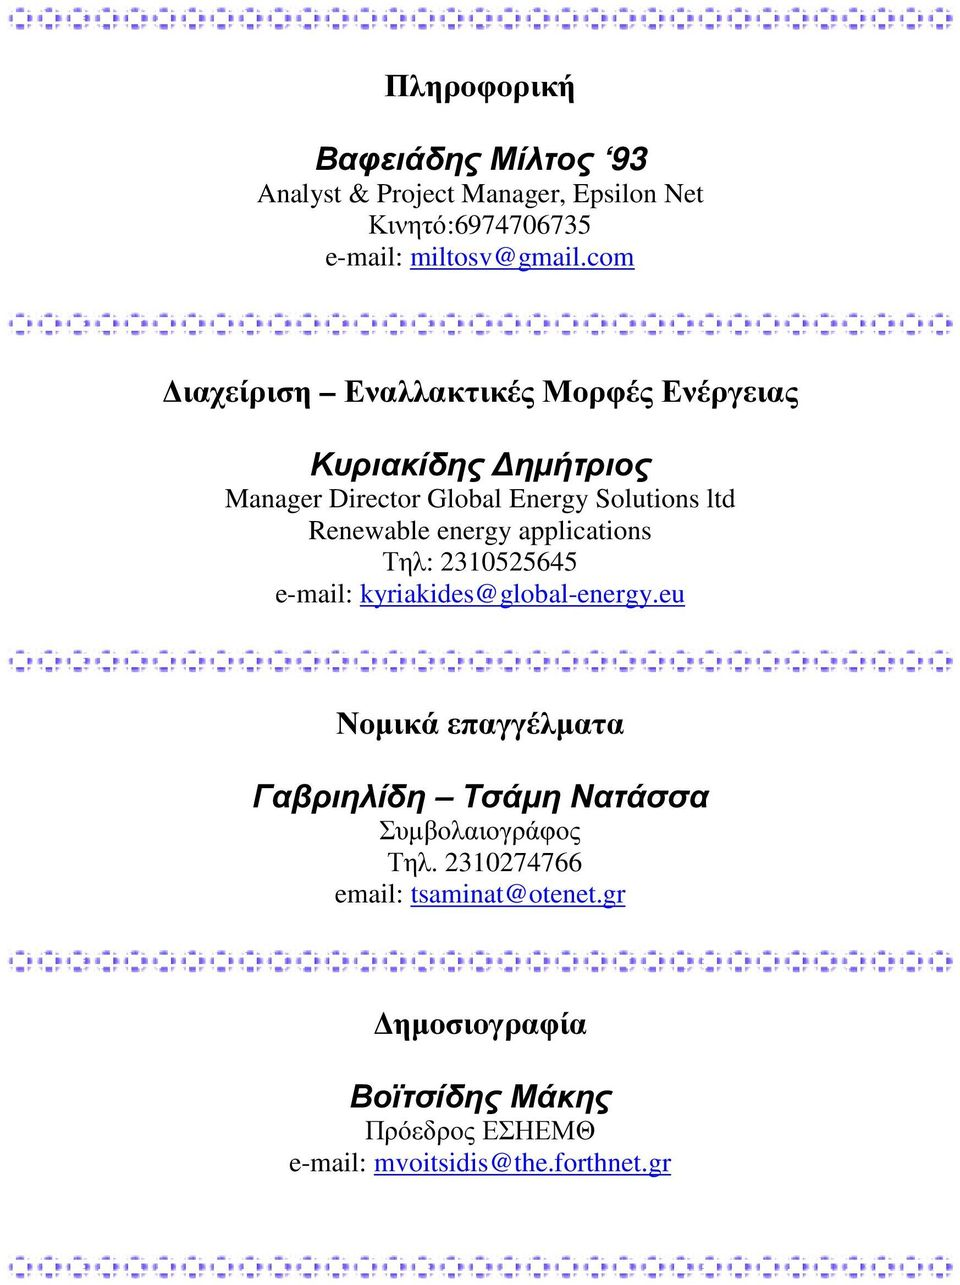 energy applications Τηλ: 2310525645 e-mail: kyriakides@global-energy.